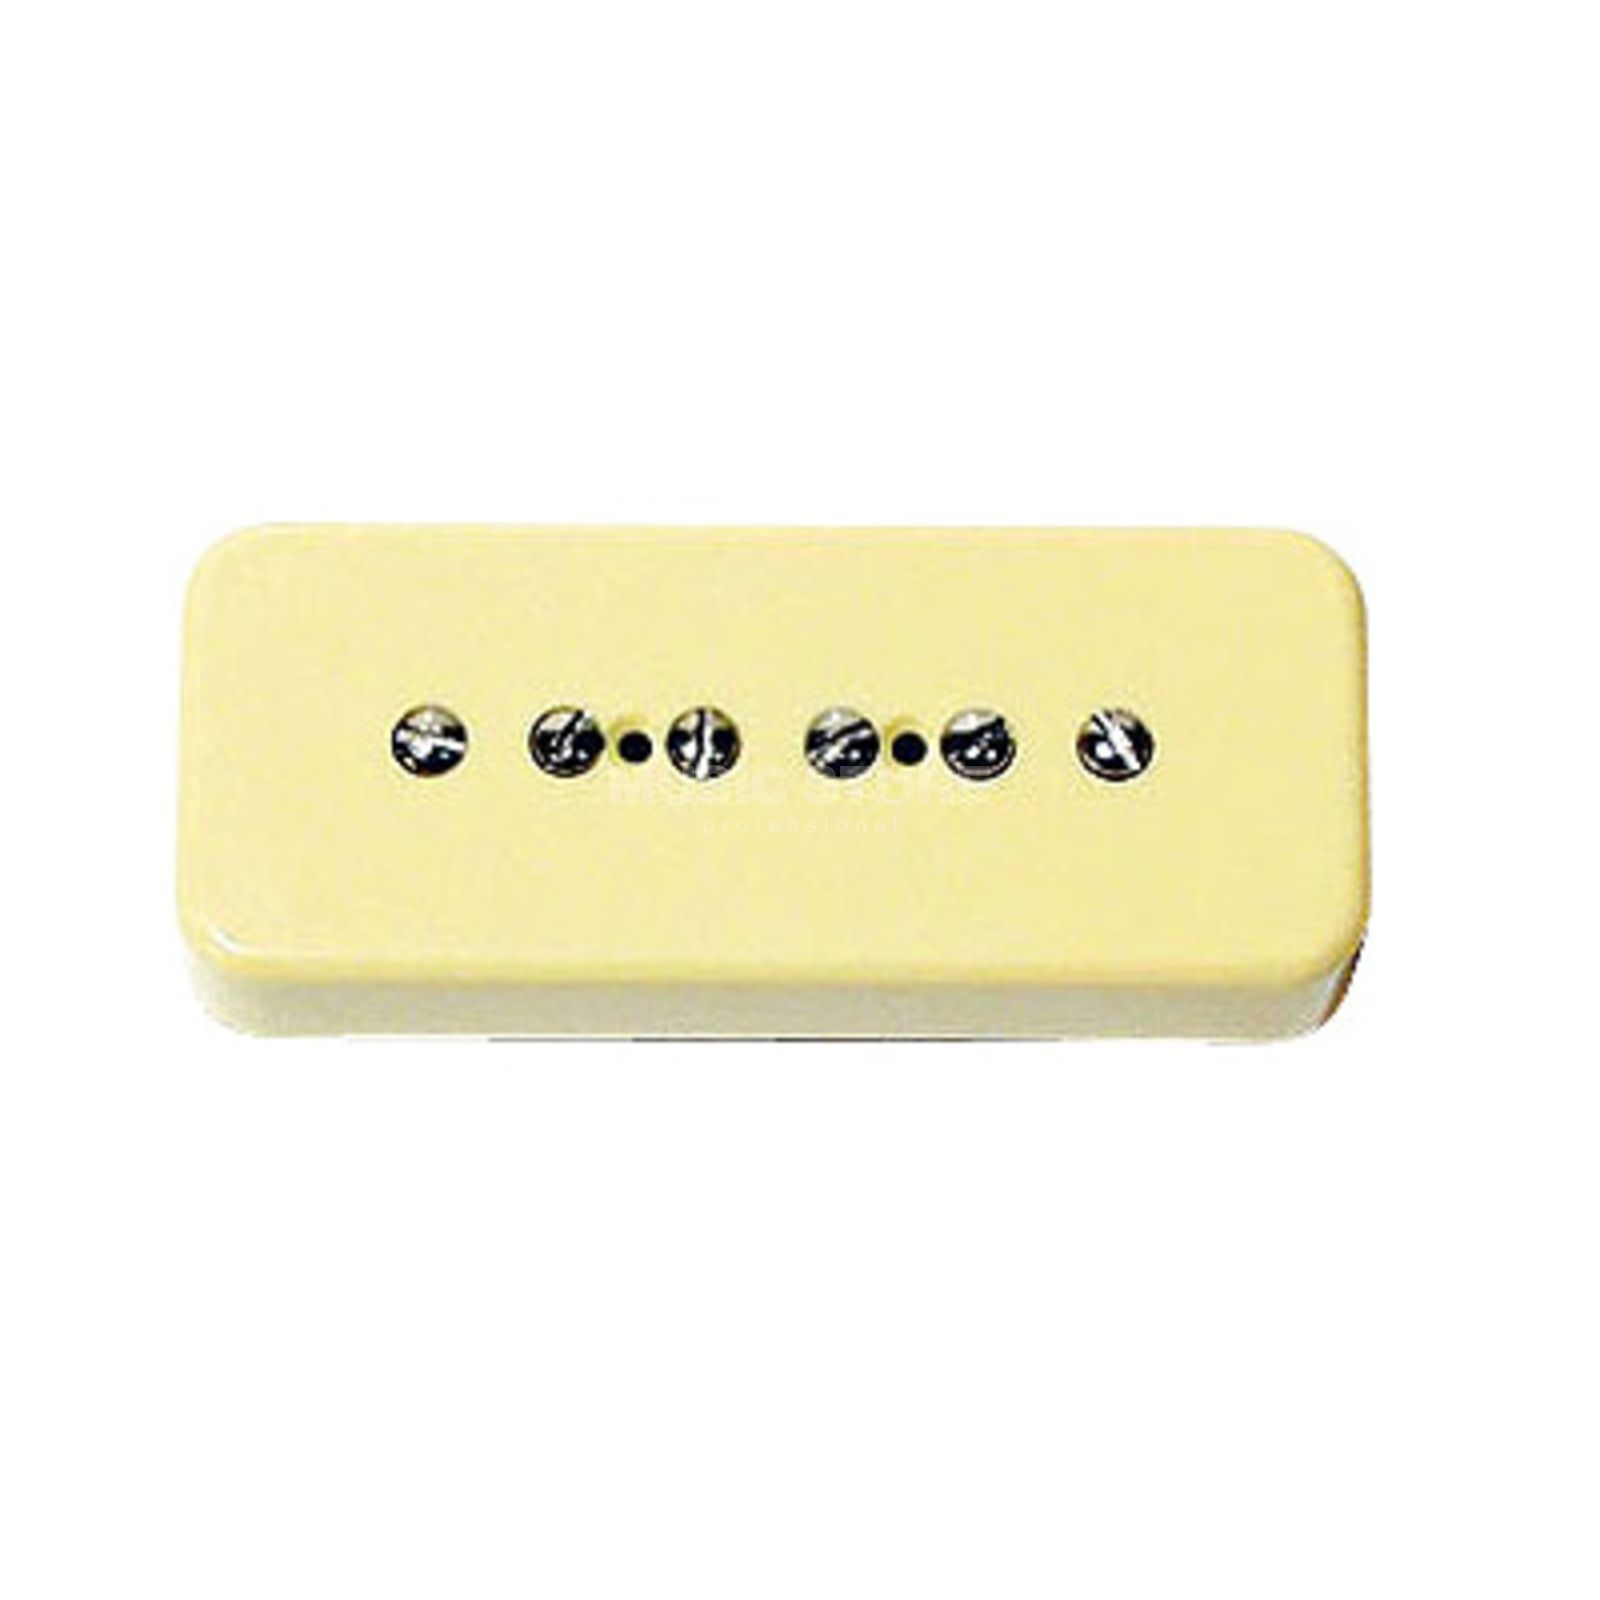 Seymour Duncan Antiquity P90 Neck Cream Produktbild